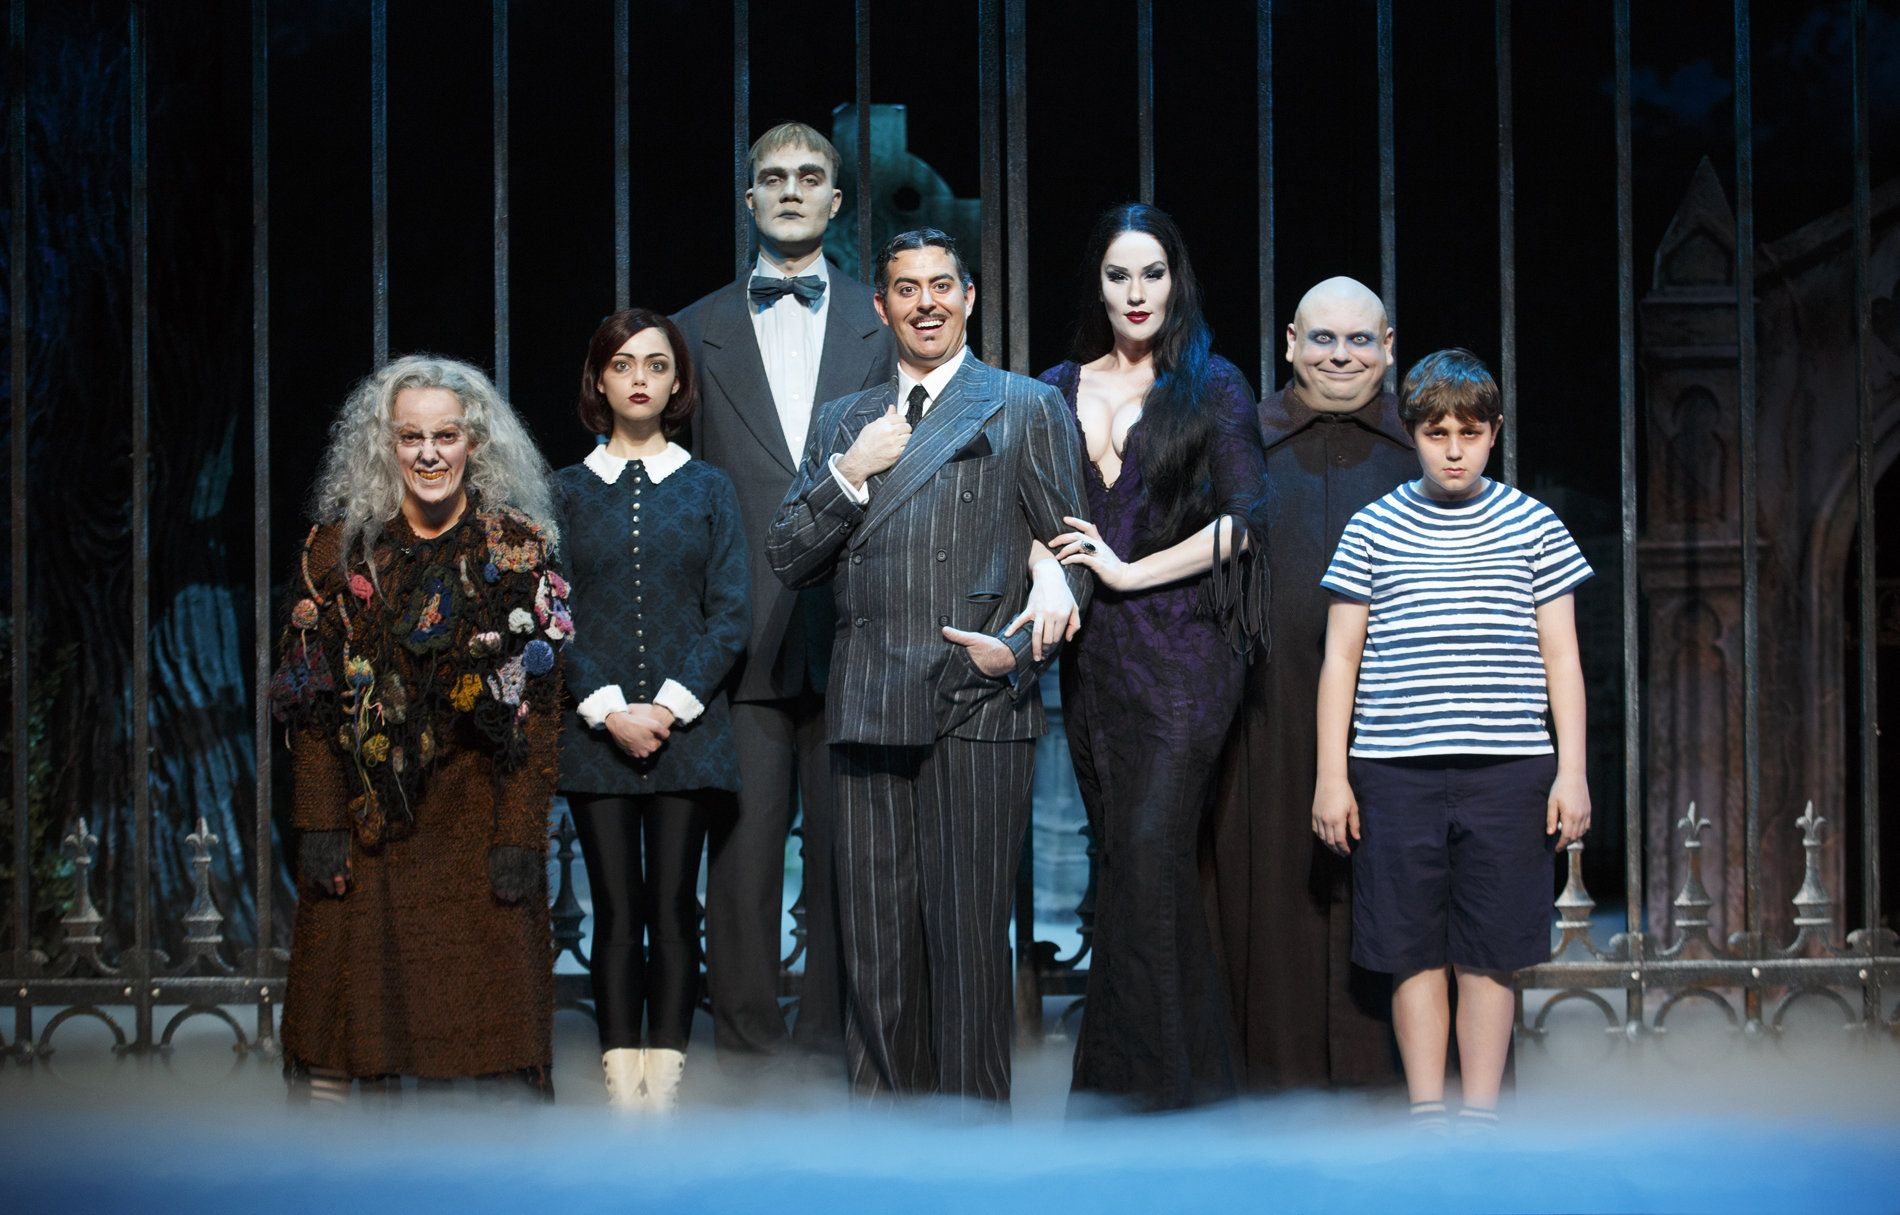 Uncle fester the addams family pinterest - Set From The Addams Family Musical Download The Addams Family On Stage Hd